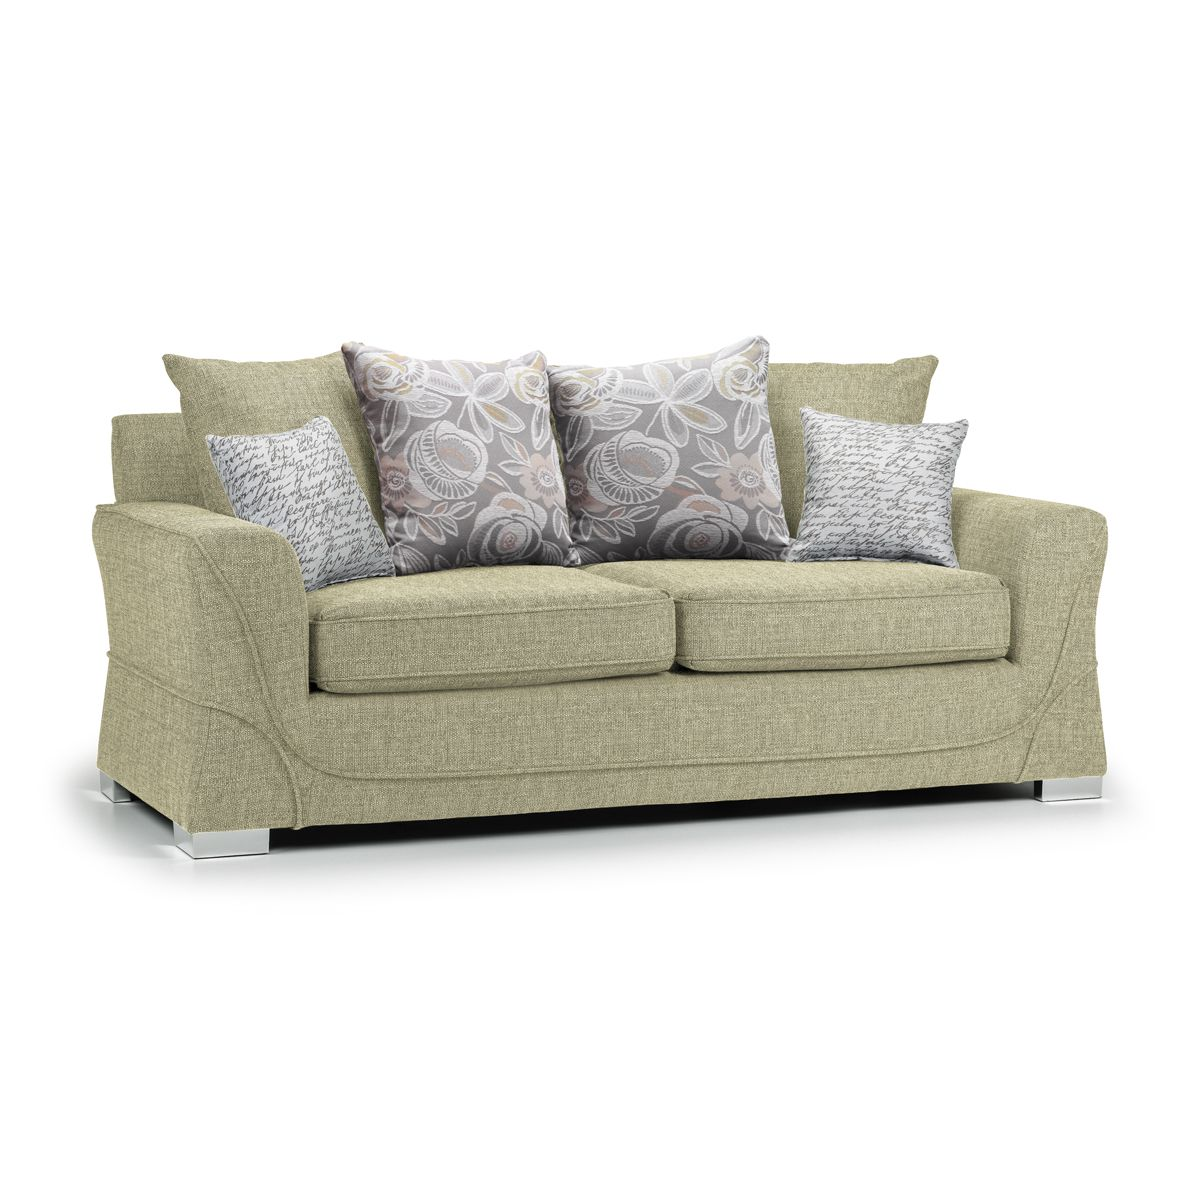 new york 3 seater sofa only 349 at sofa success new york